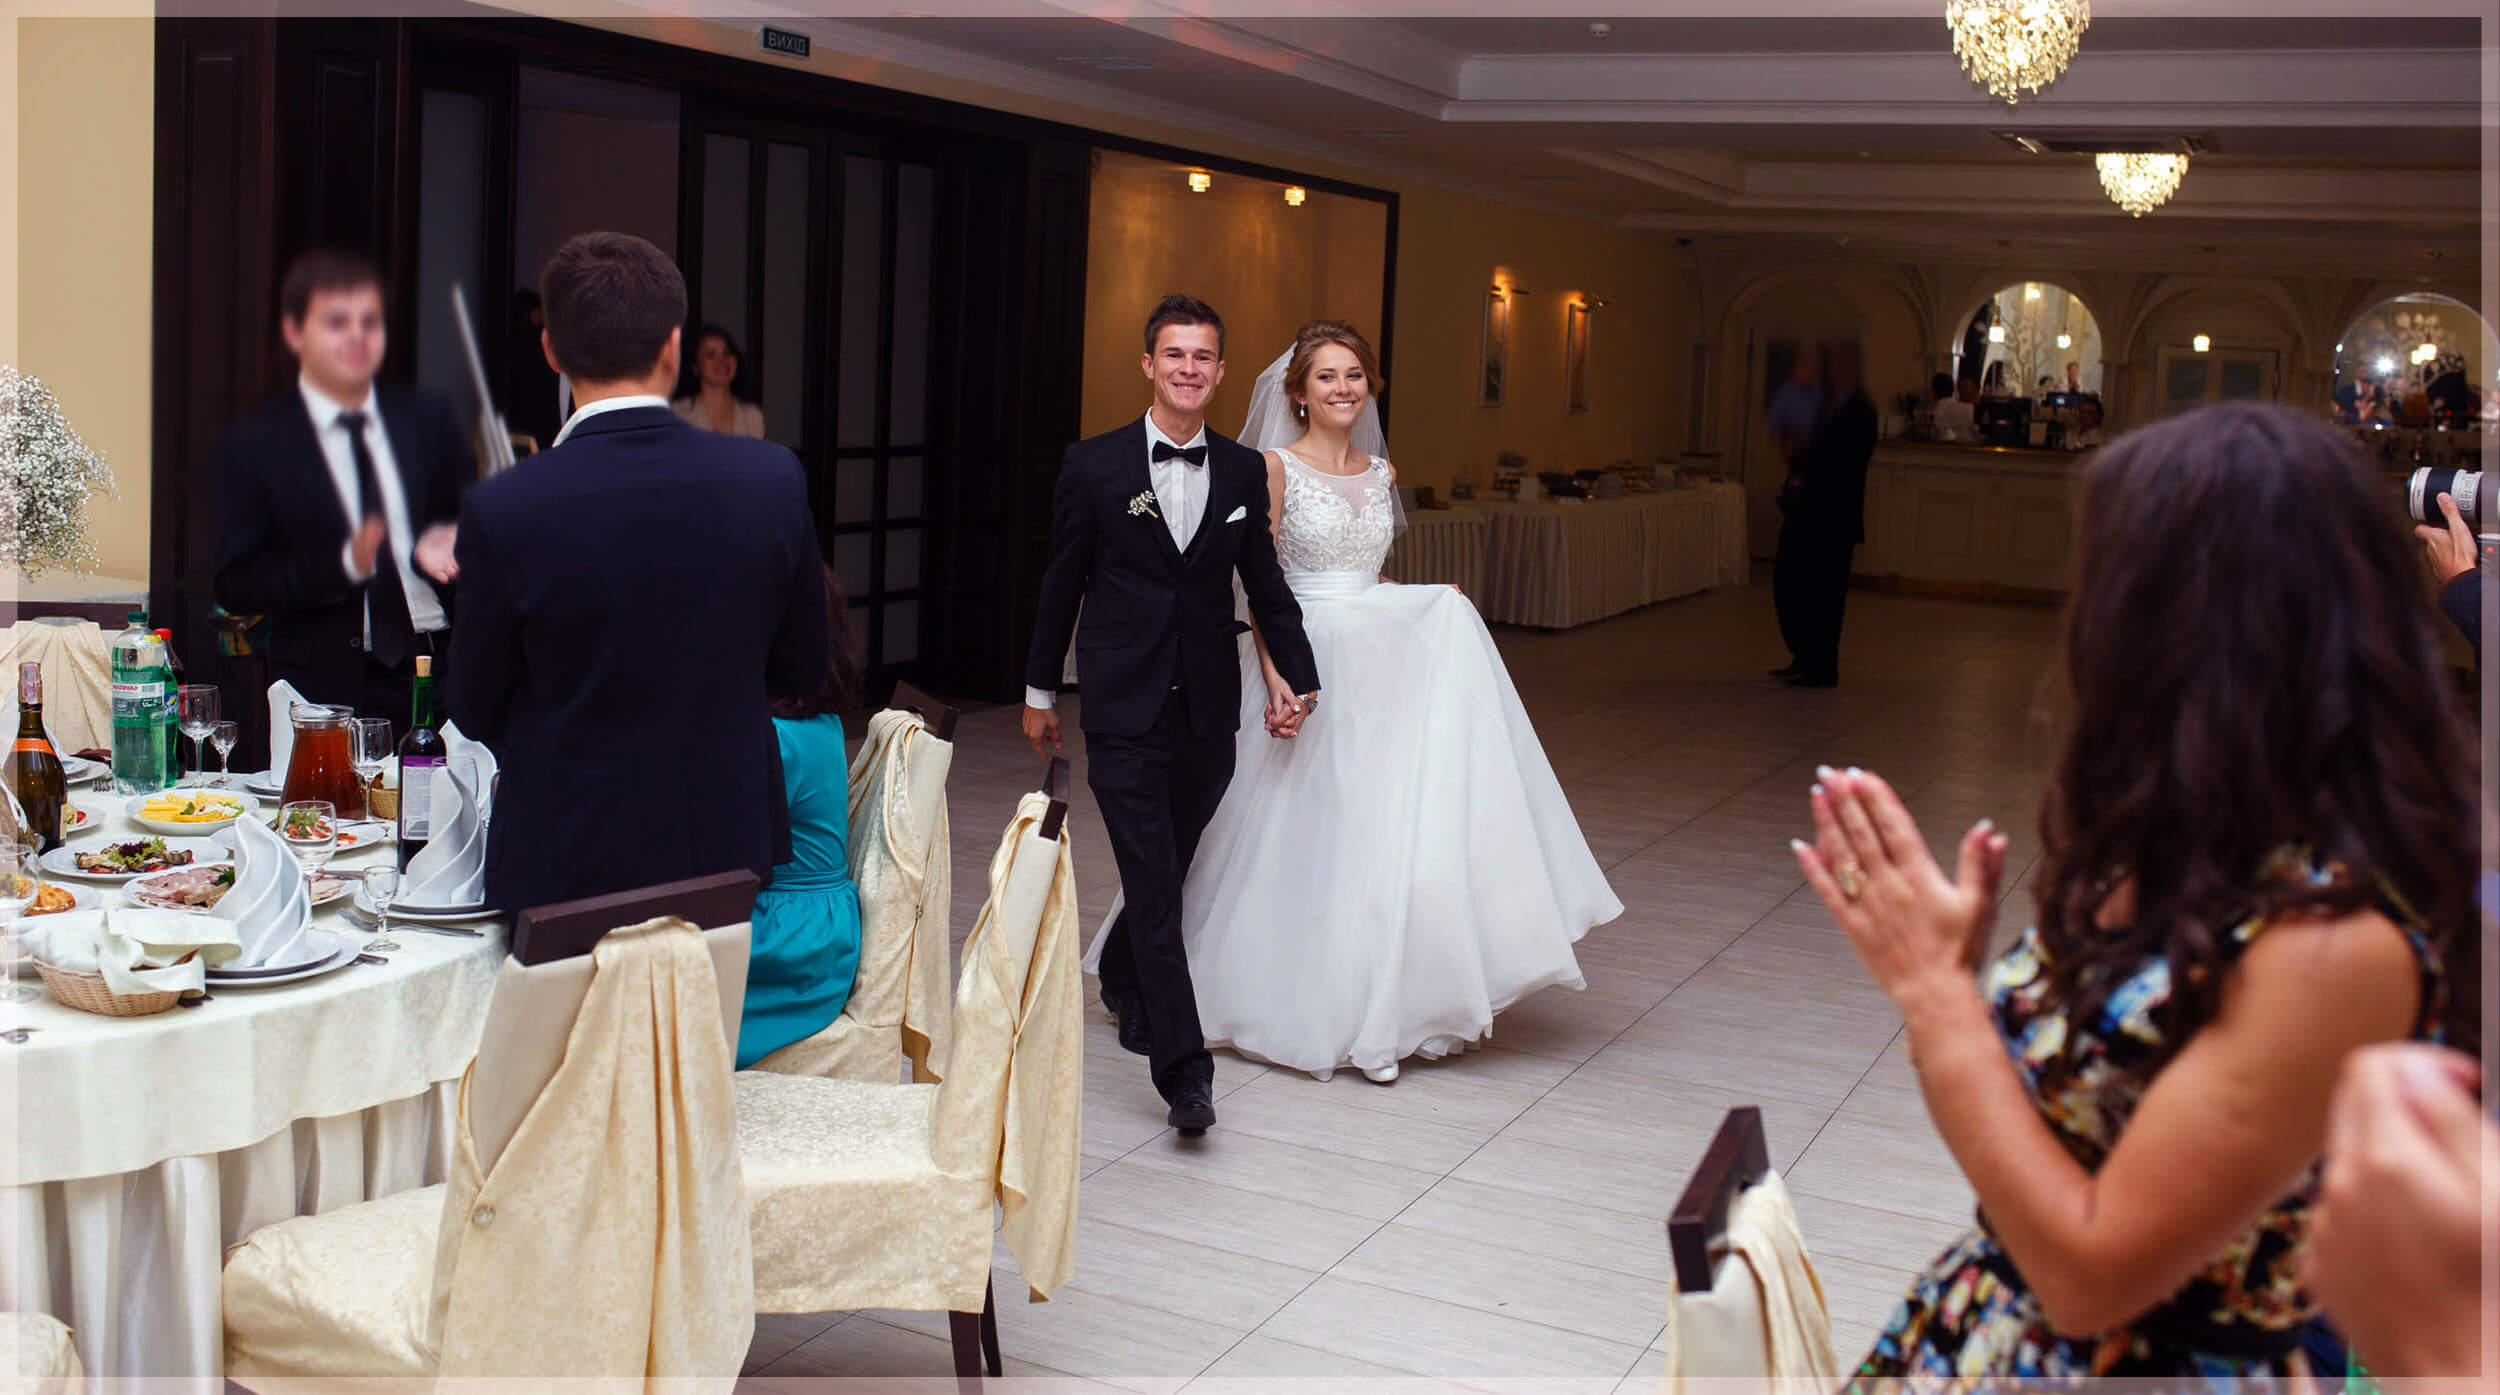 Wedding Photos in low light-longer shutter speed